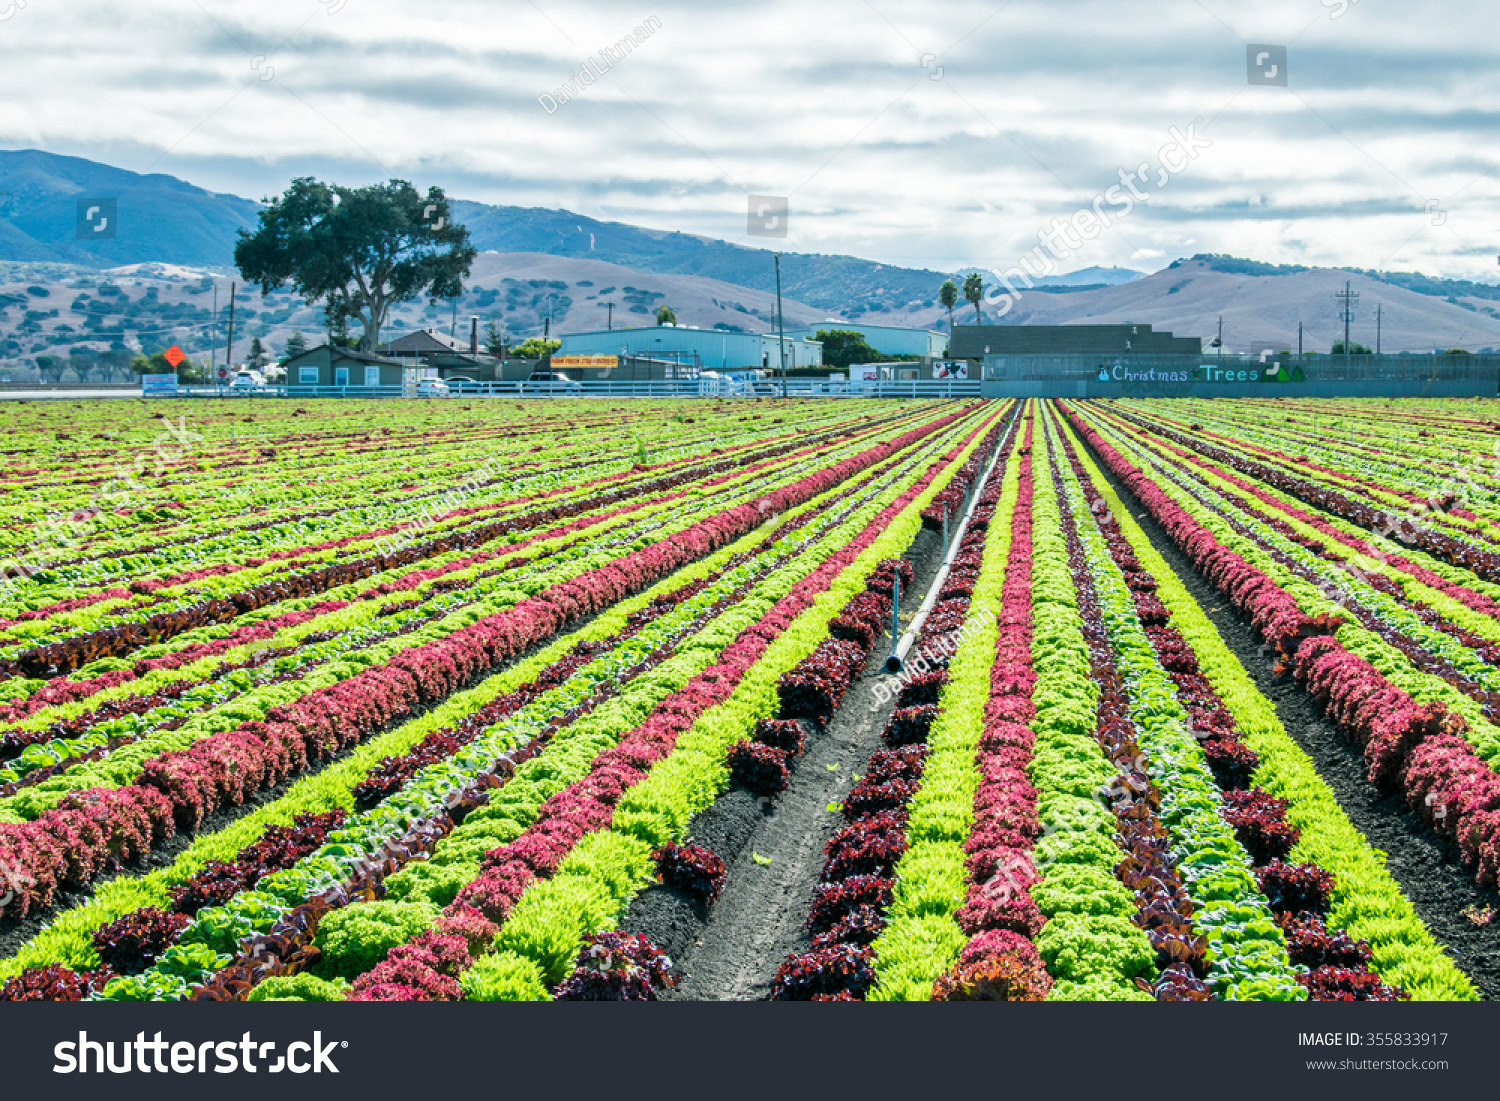 Rainbow of colorful (colourful) fields of summer crops (lettuce plants), including mixed green, red, purple varieties, grow in rows in Salinas Valley of Central California (United States, America).